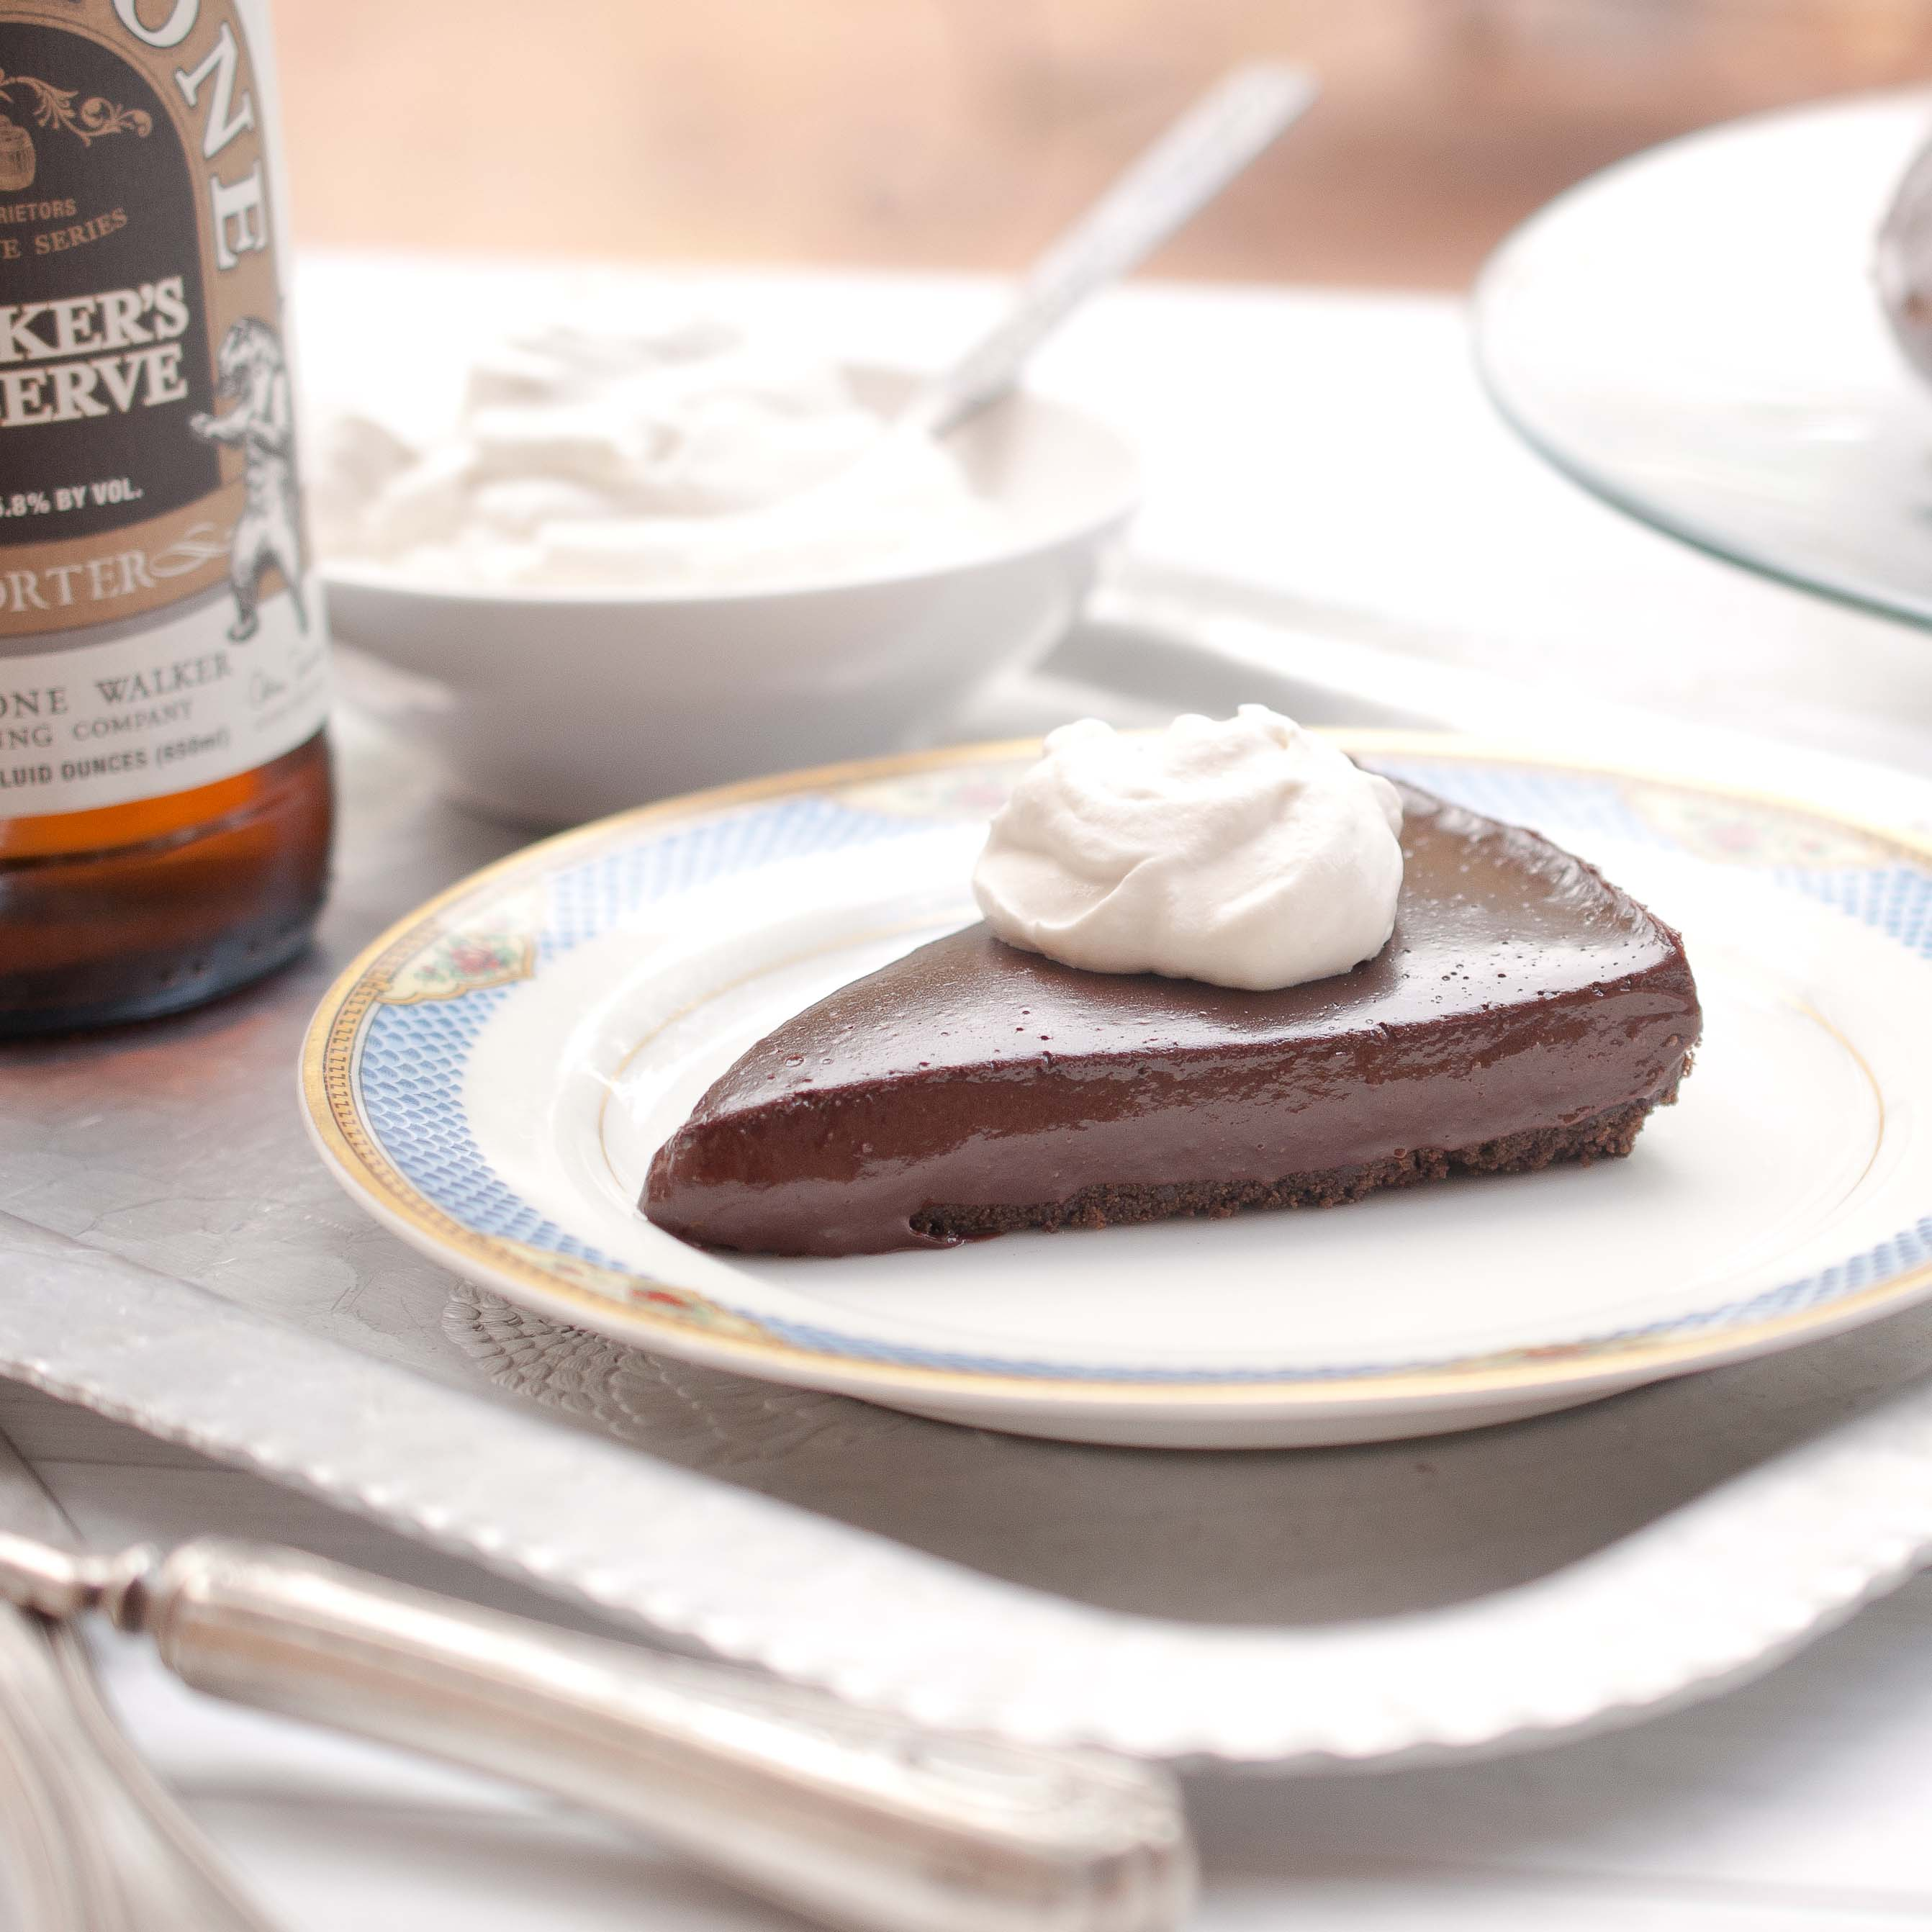 Chocolate Porter Beer Tart With Porter Whipped Cream - The Beeroness